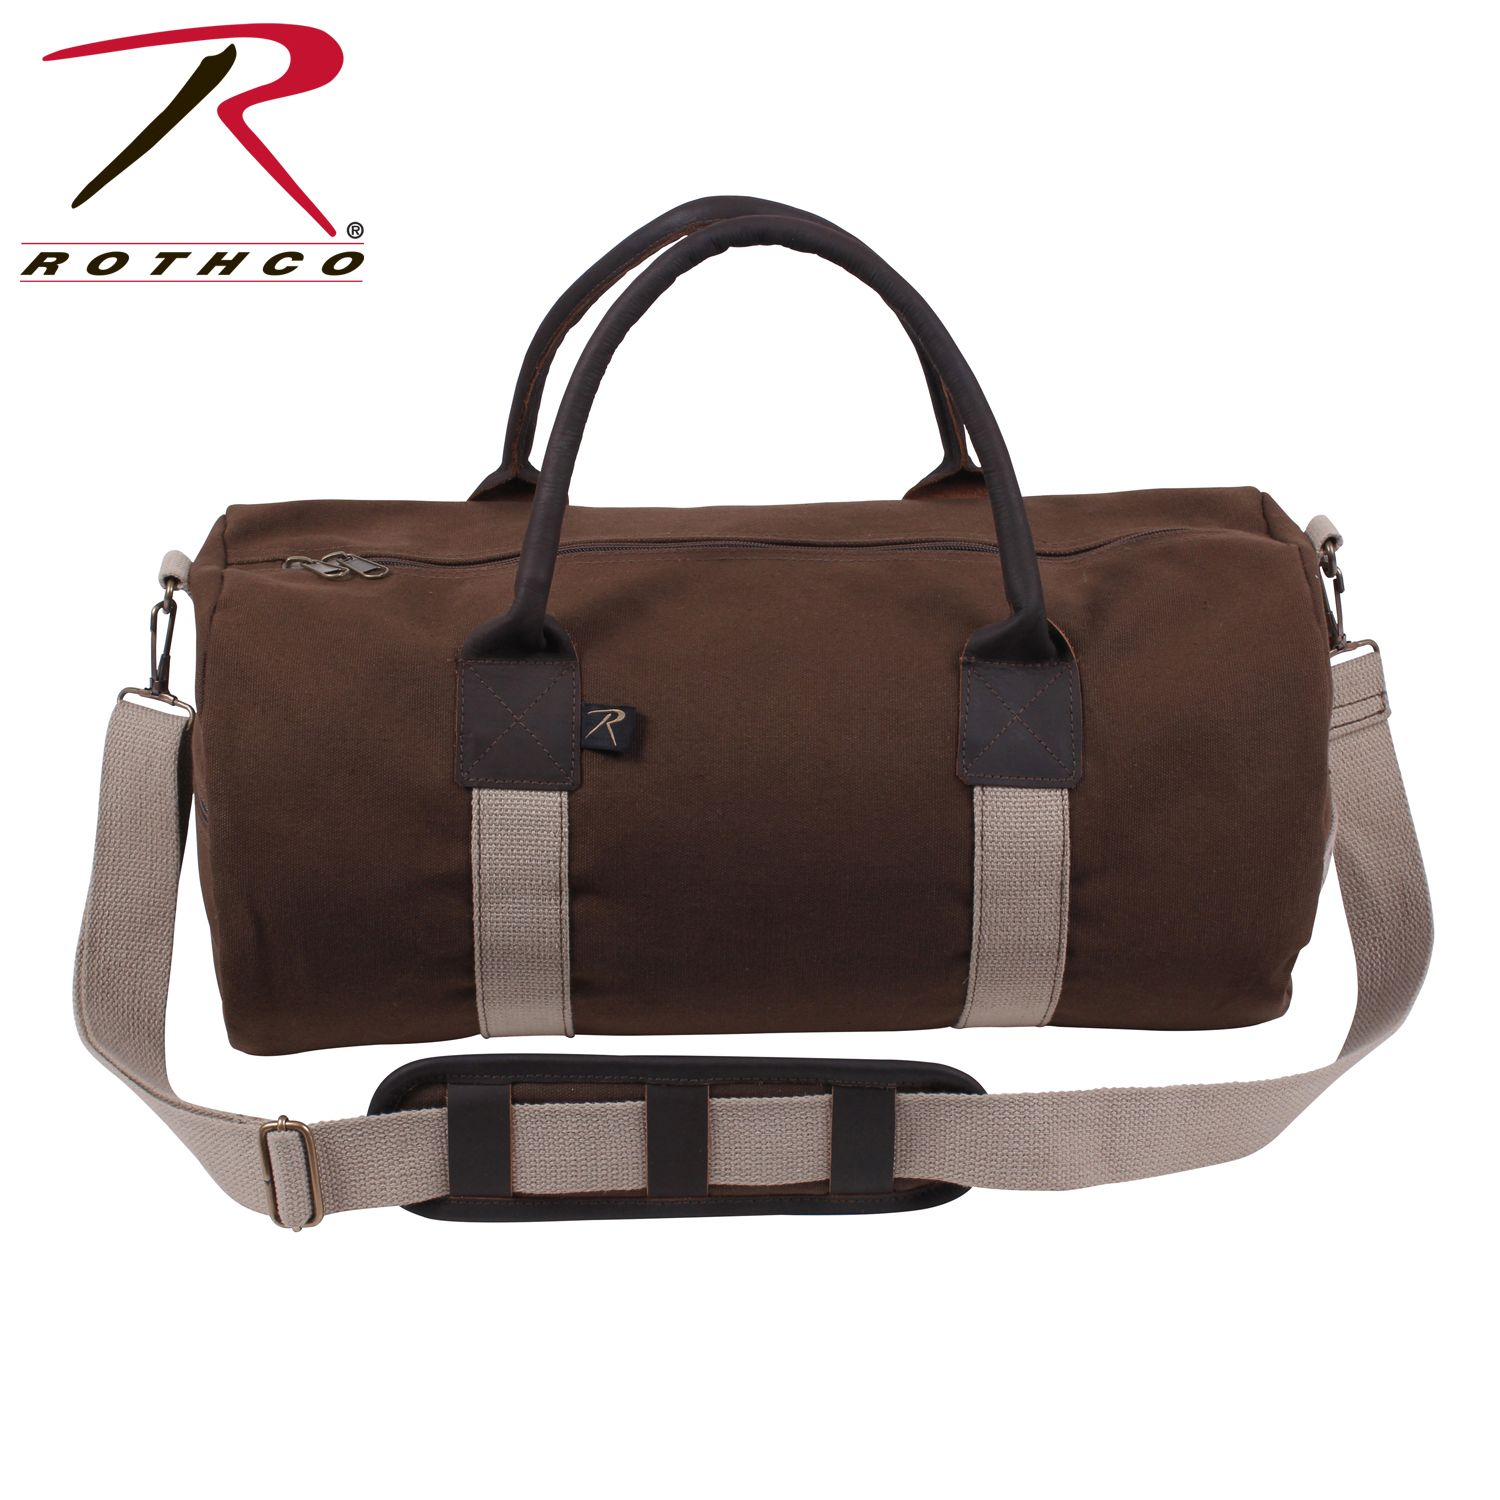 28b04fc014 Buy Rothco Canvas   Leather Gym Duffle Bag - Rothco Online at Best ...